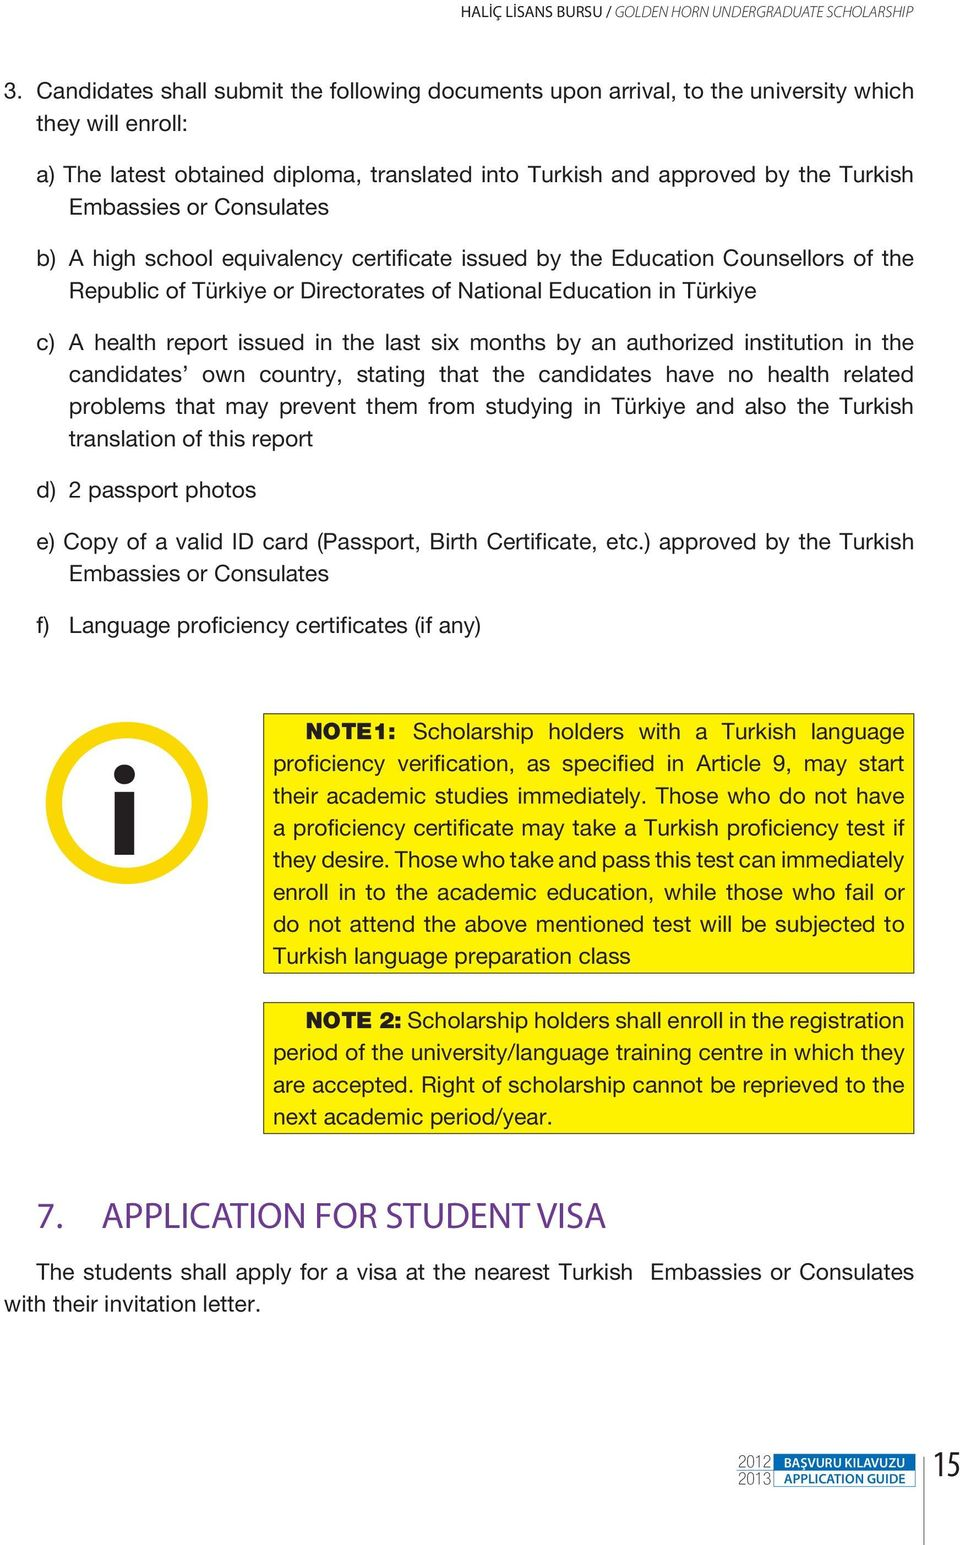 or Consulates b) A high school equivalency certificate issued by the Education Counsellors of the Republic of Türkiye or Directorates of National Education in Türkiye c) A health report issued in the